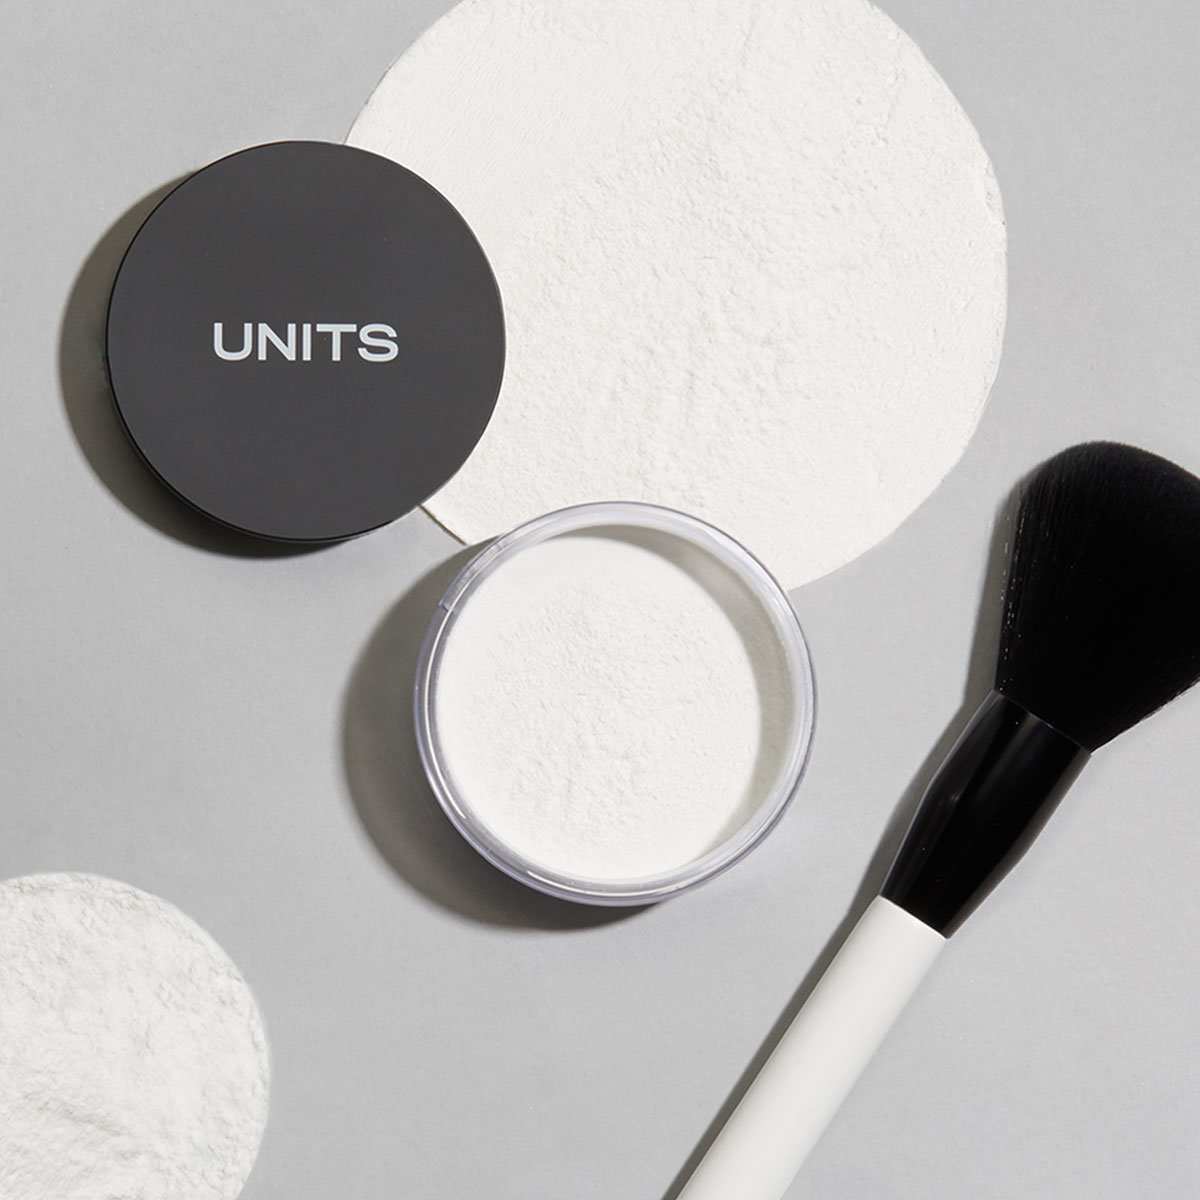 Alternate product image for UNIT 502 Loose Setting Powder shown with the description.